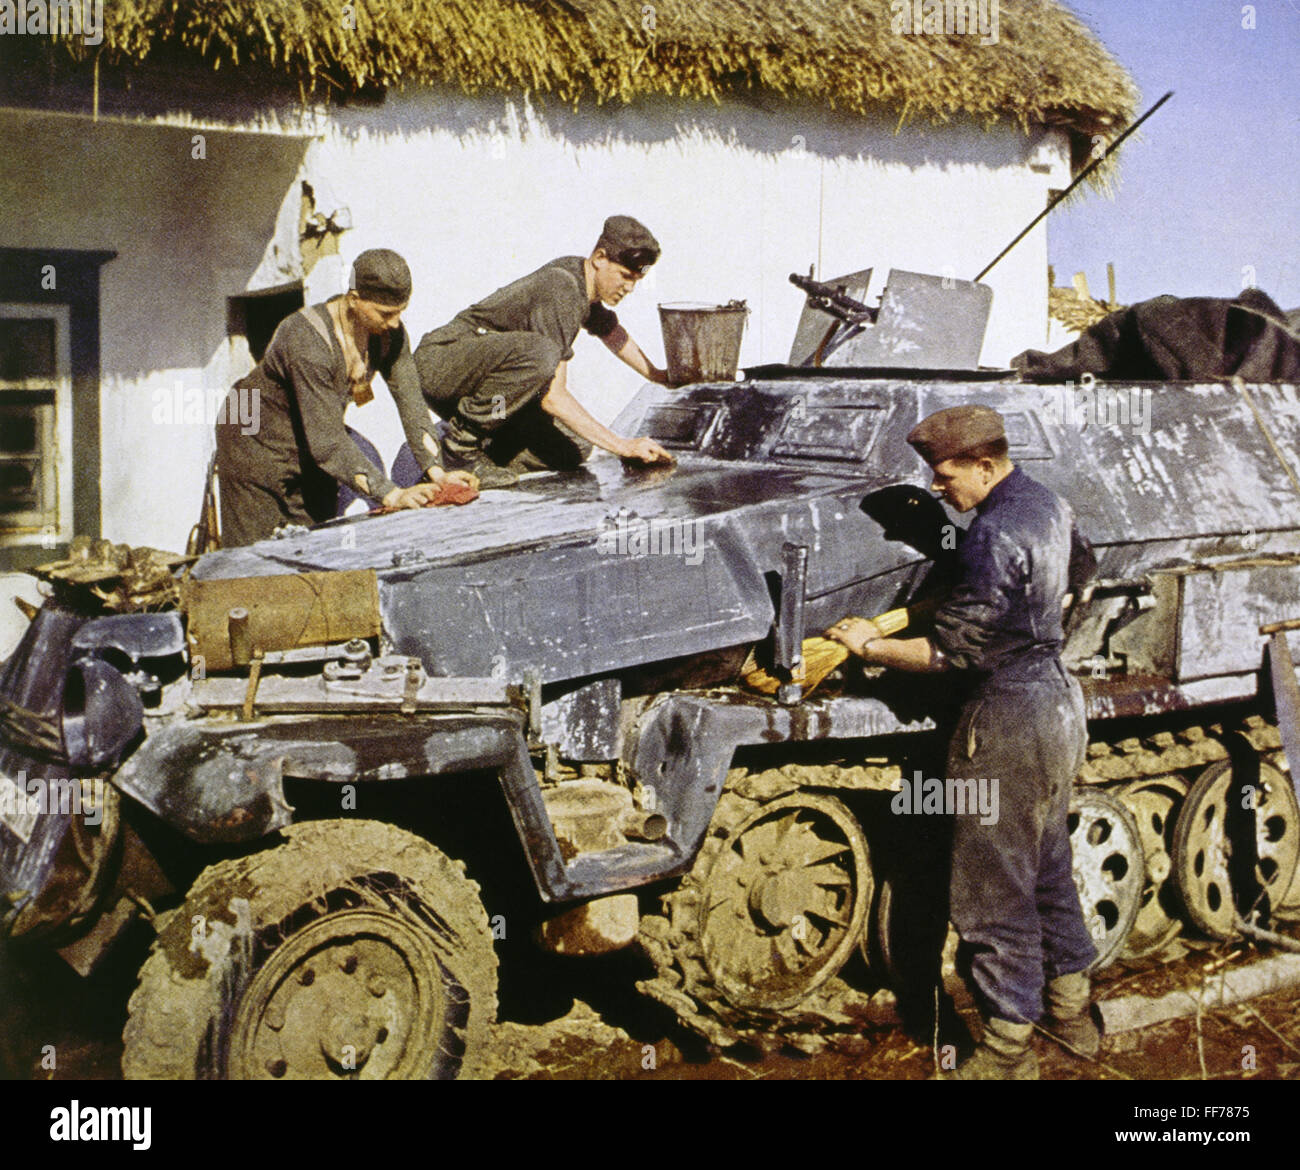 events-second-world-war-wwii-russia-1942